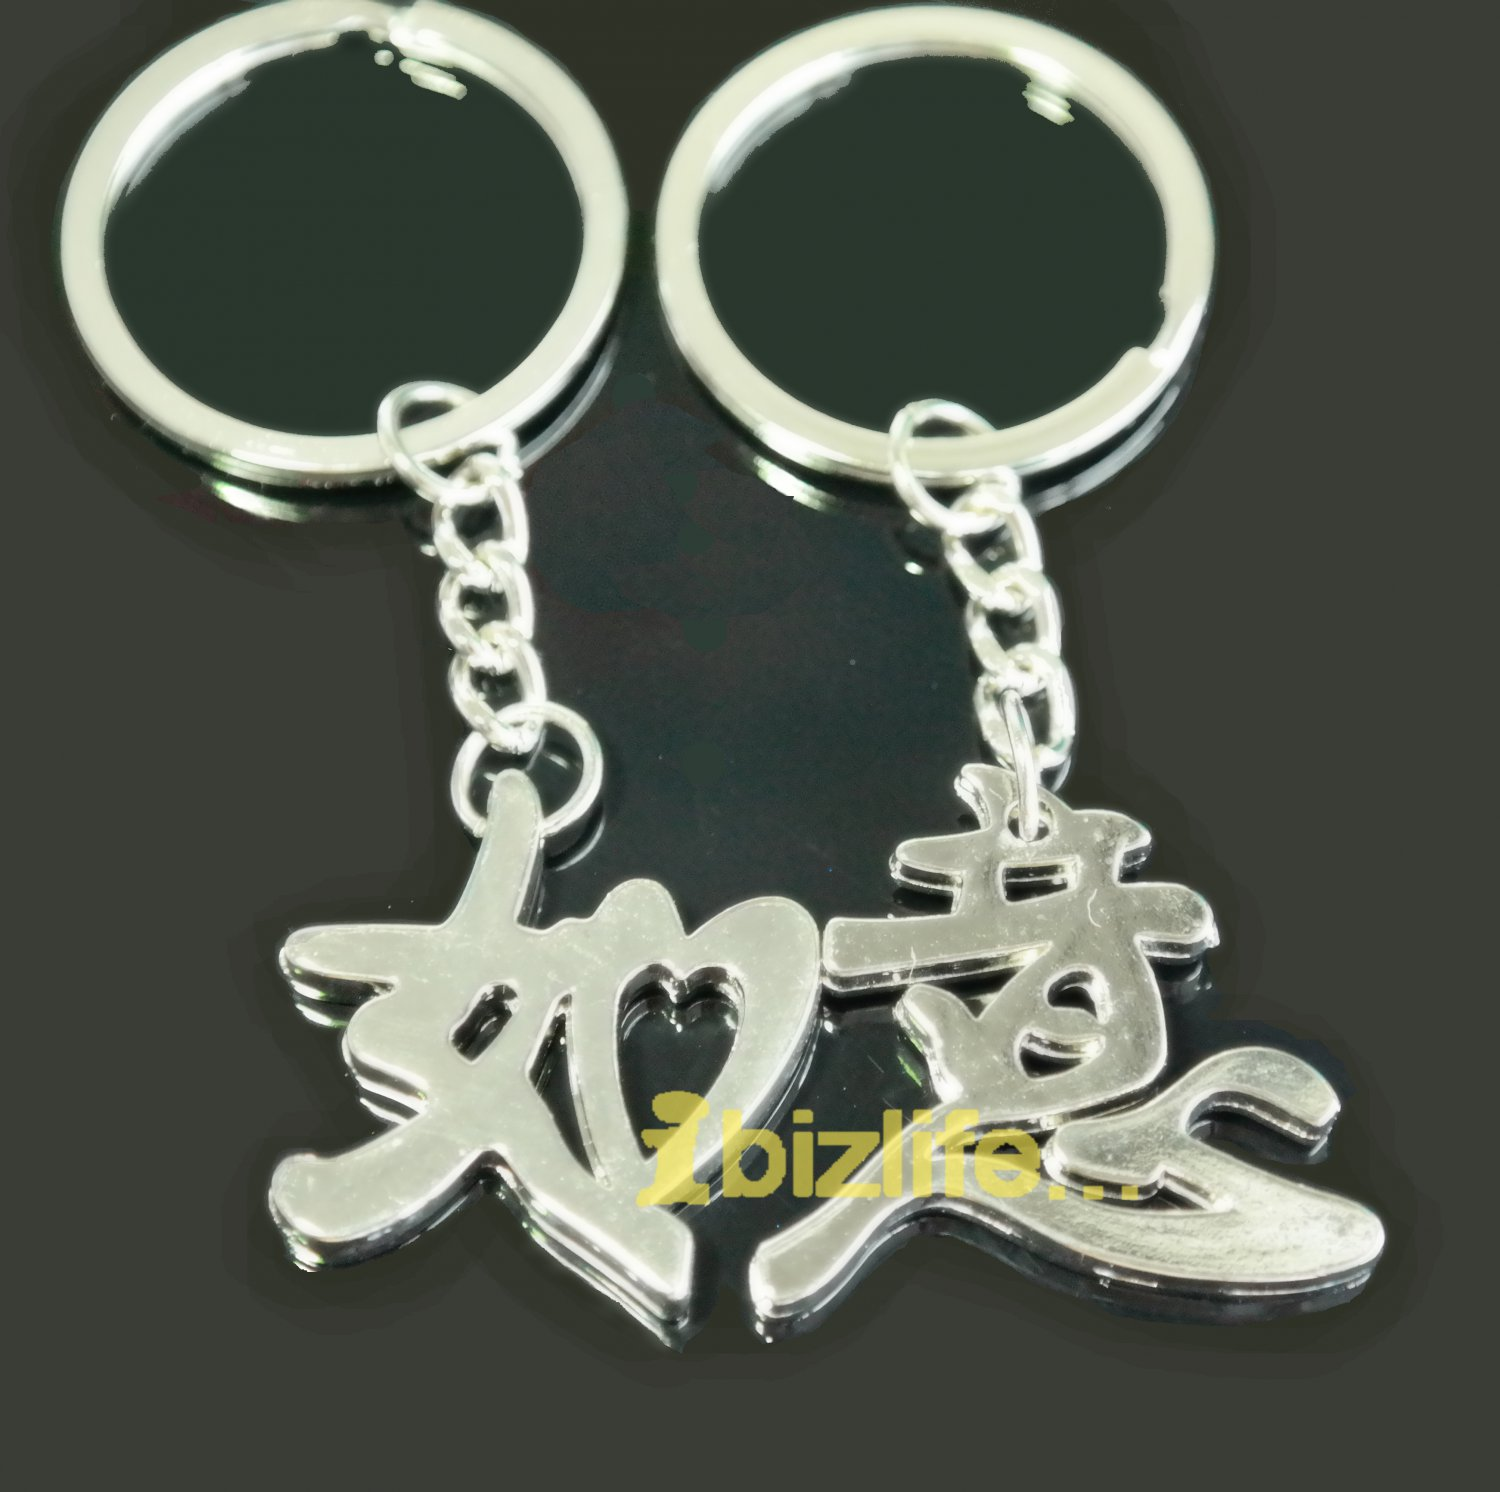 Magnetic Metal keychain with a pair of Blessing Chinese letters to LOVES, Friends Nice-as-Will gift